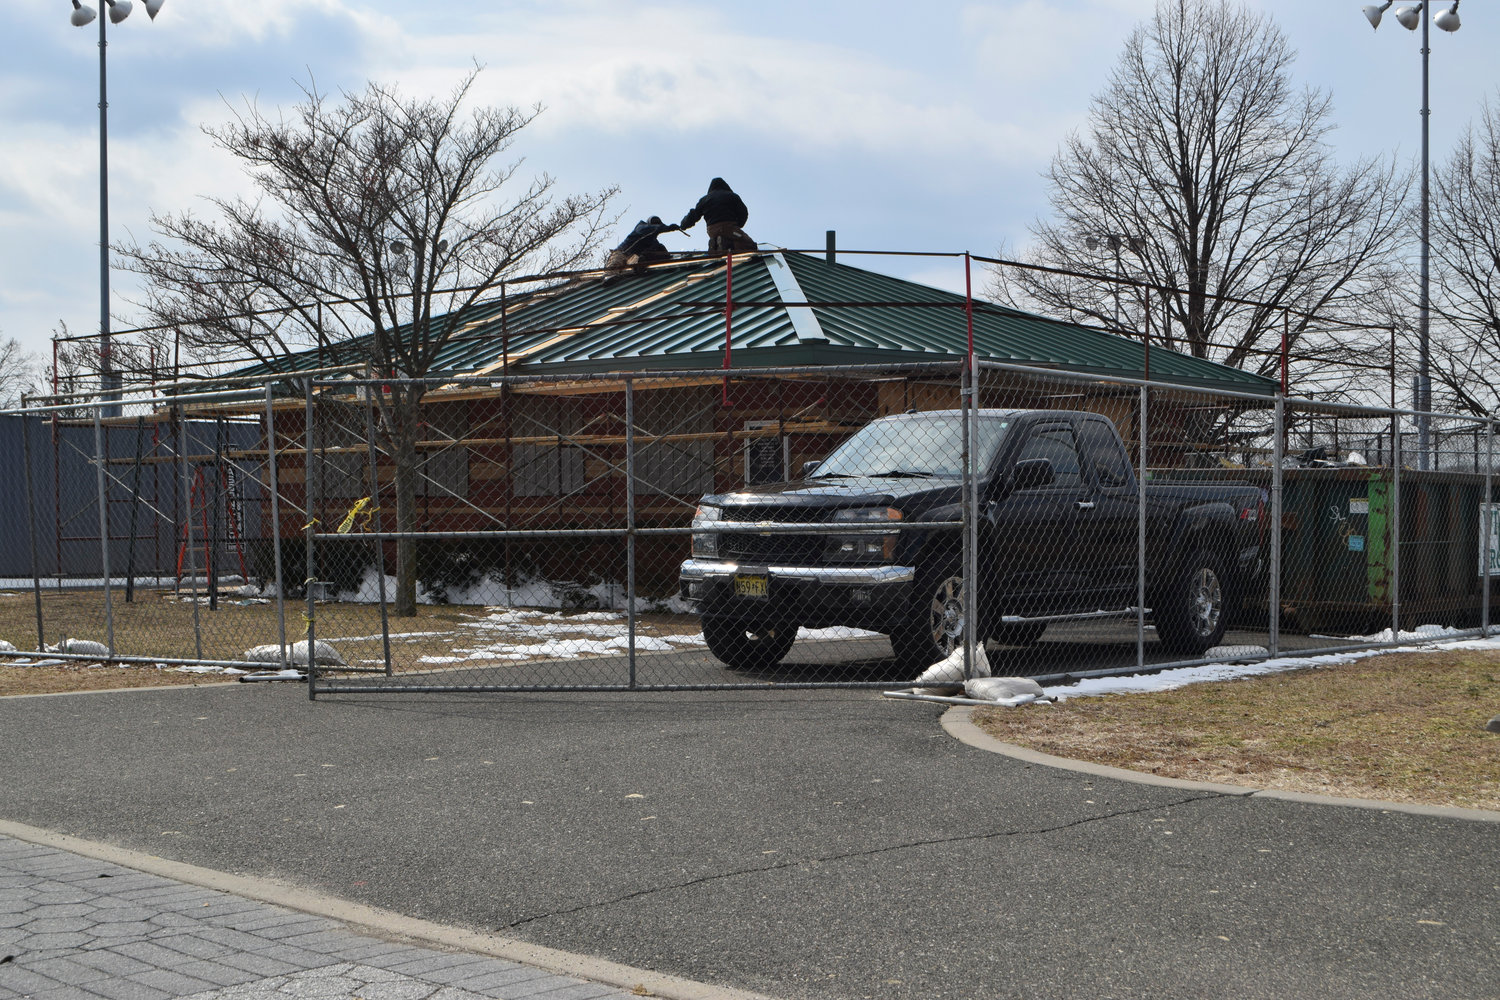 The Inwood Park administration building is being repaired and expected to be ready for the summer season.